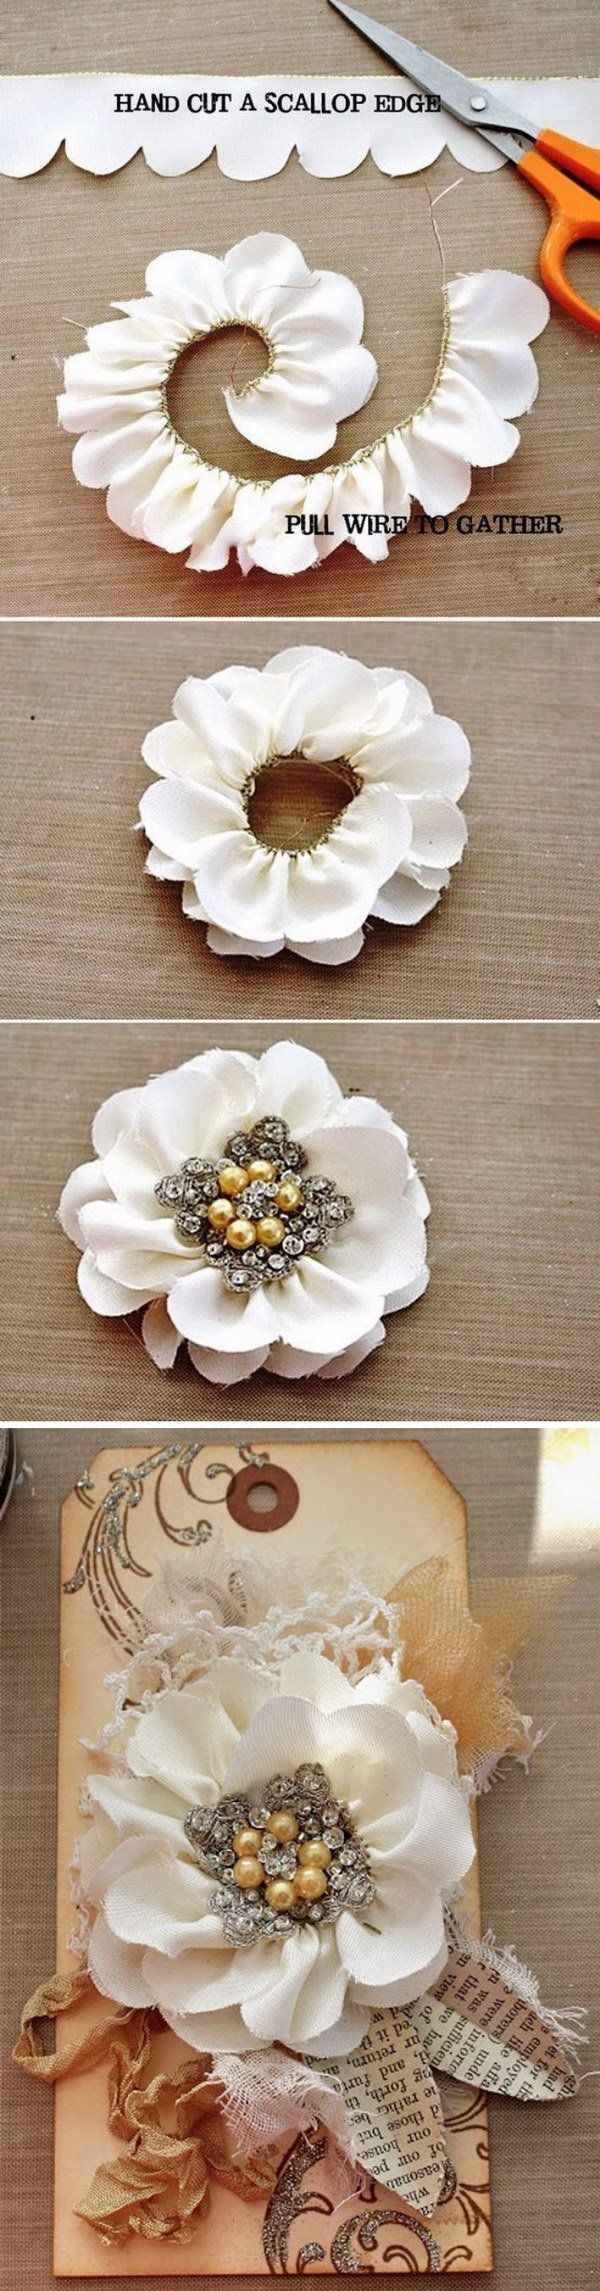 Best 25 shabby chic crafts ideas on pinterest shabby for Decorative flowers for crafts